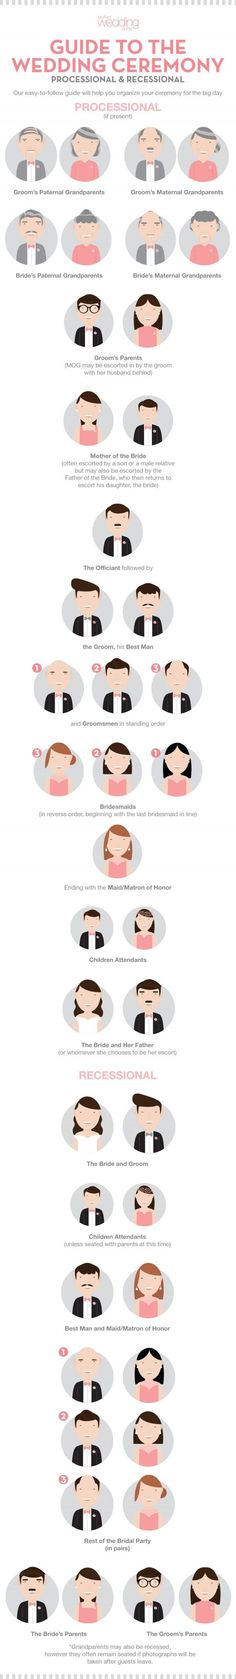 Whether it's the MOH, FOB or the Officiant, everyone has a specific time to walk down the aisle. Here's an infographic explaining the wedding ceremony order. More